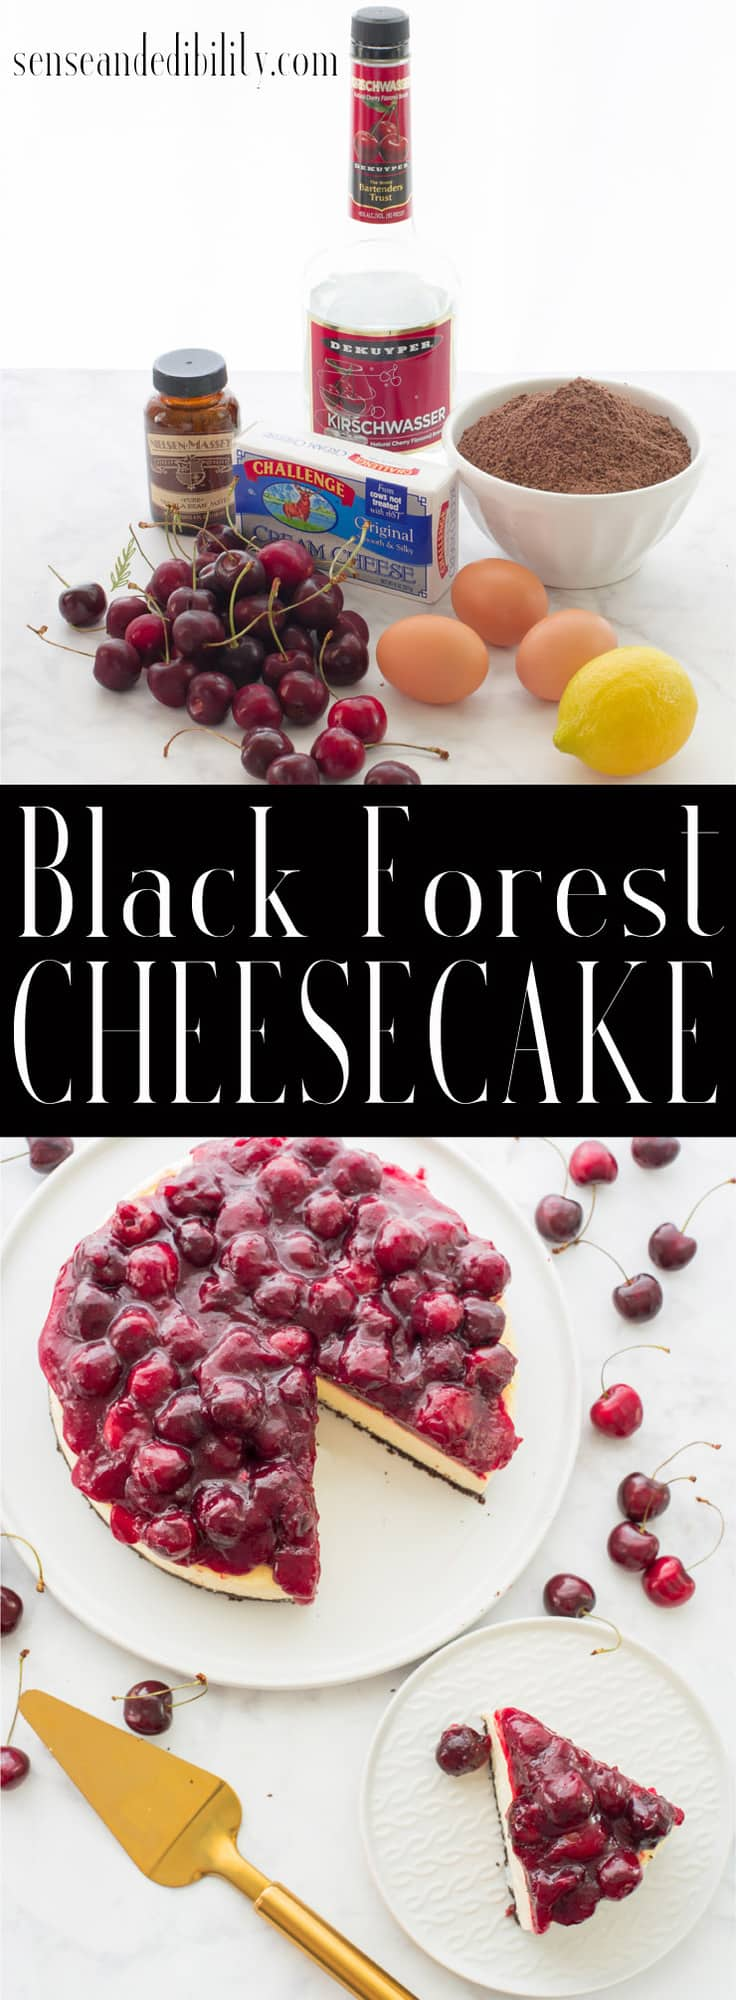 Mash up two desserts with this creamy cheesecake topped with a made from scratch cherry topping. #blackforestcake #cheesecake #kirschtorte #dessert #cake #weekendbakingproject via @ediblesense